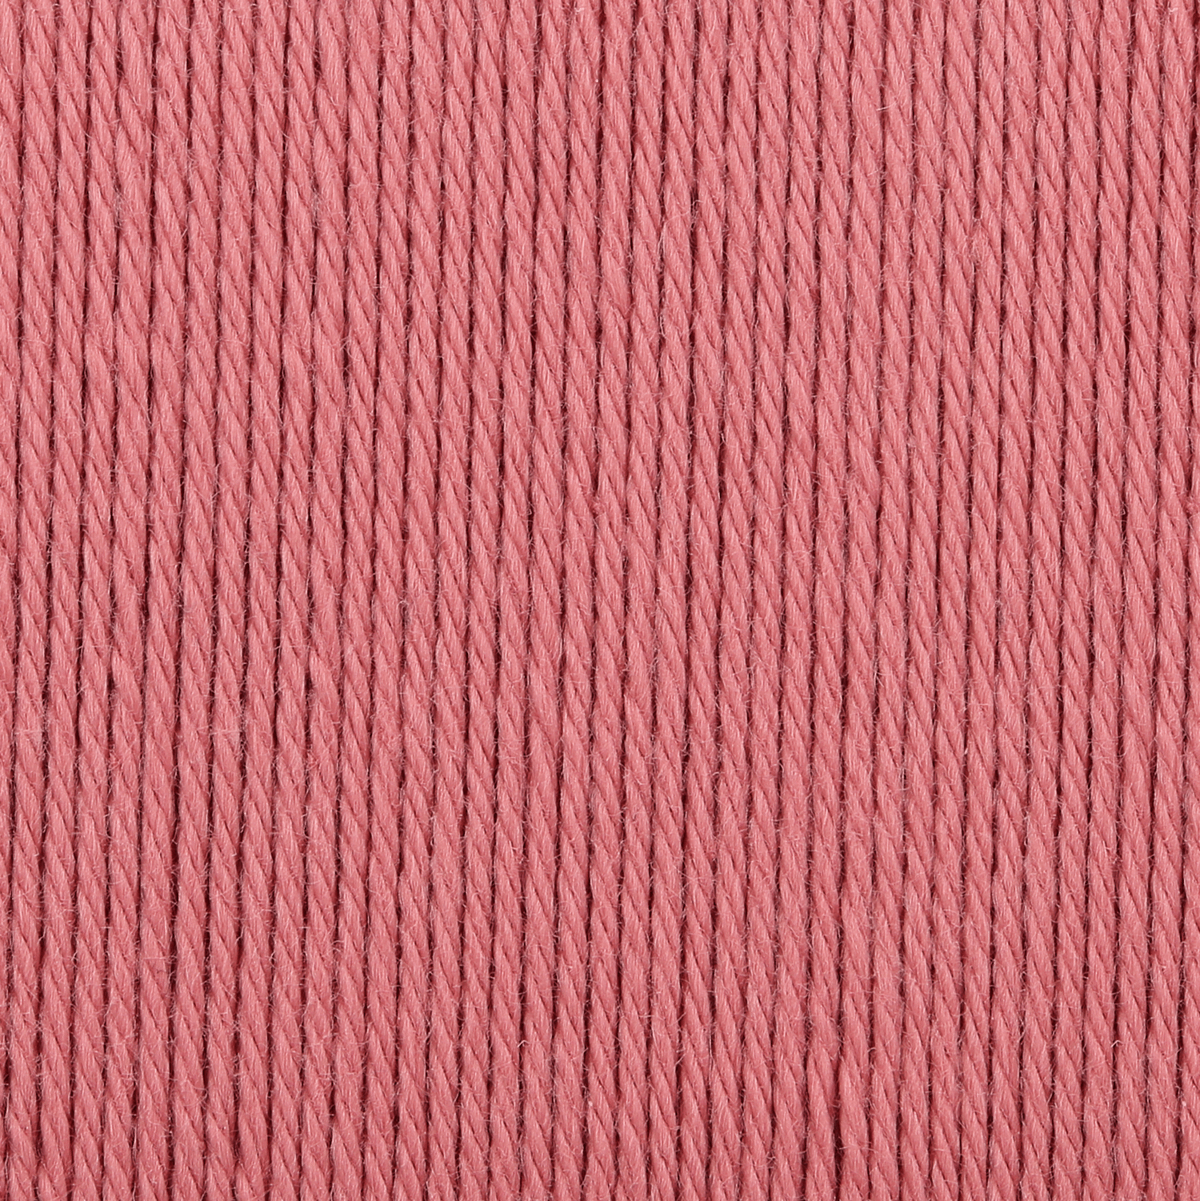 Picture of Organic Cotton: 10 x 50g: Vintage Rose